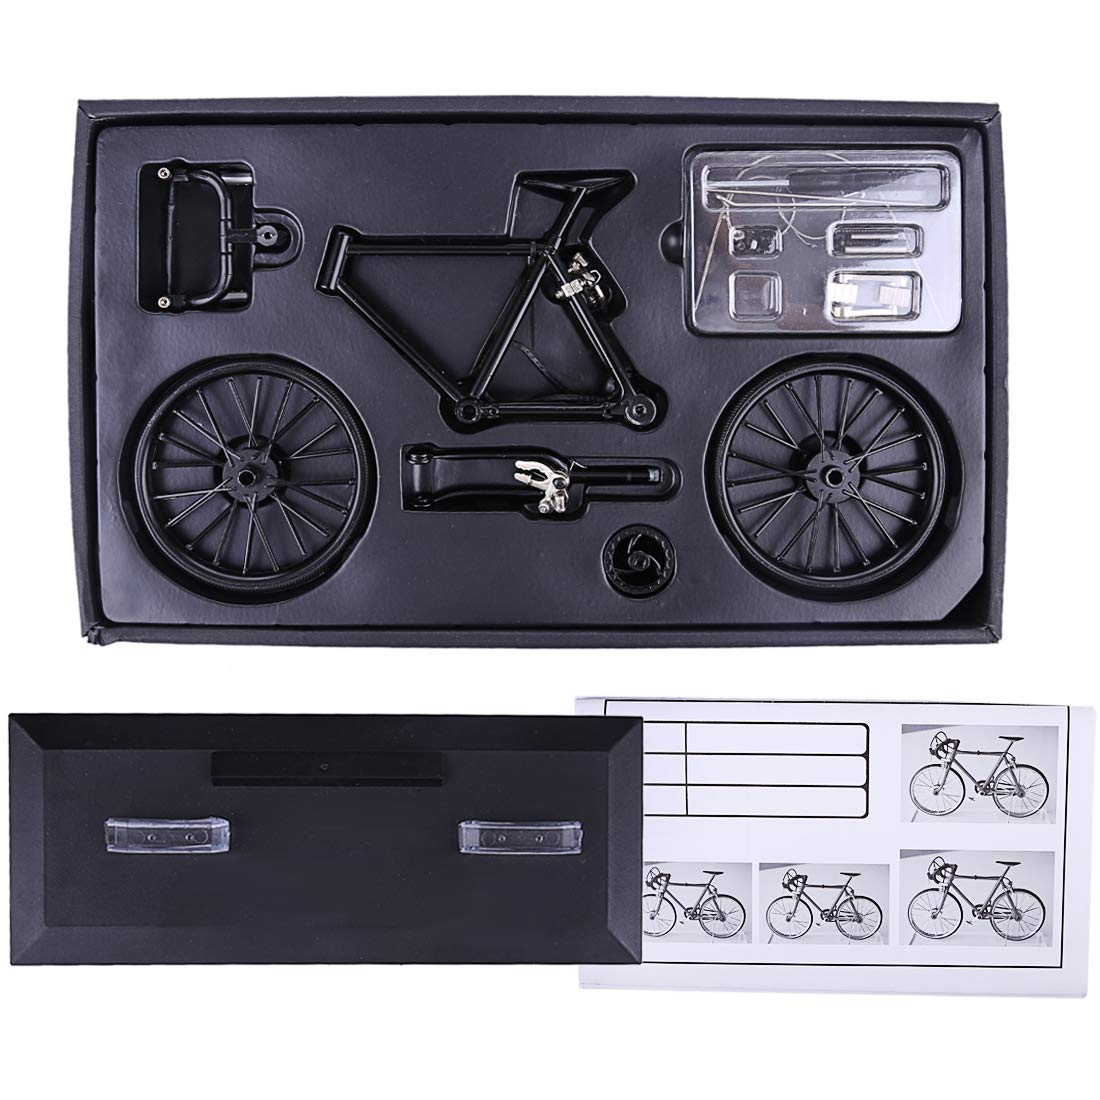 DIY Bike Models Kits to Build with Display Stand 3D Puzzles for Kids Ages 8-12 RuiyiF Model Bicycle Zinc Alloy Desk Decorations